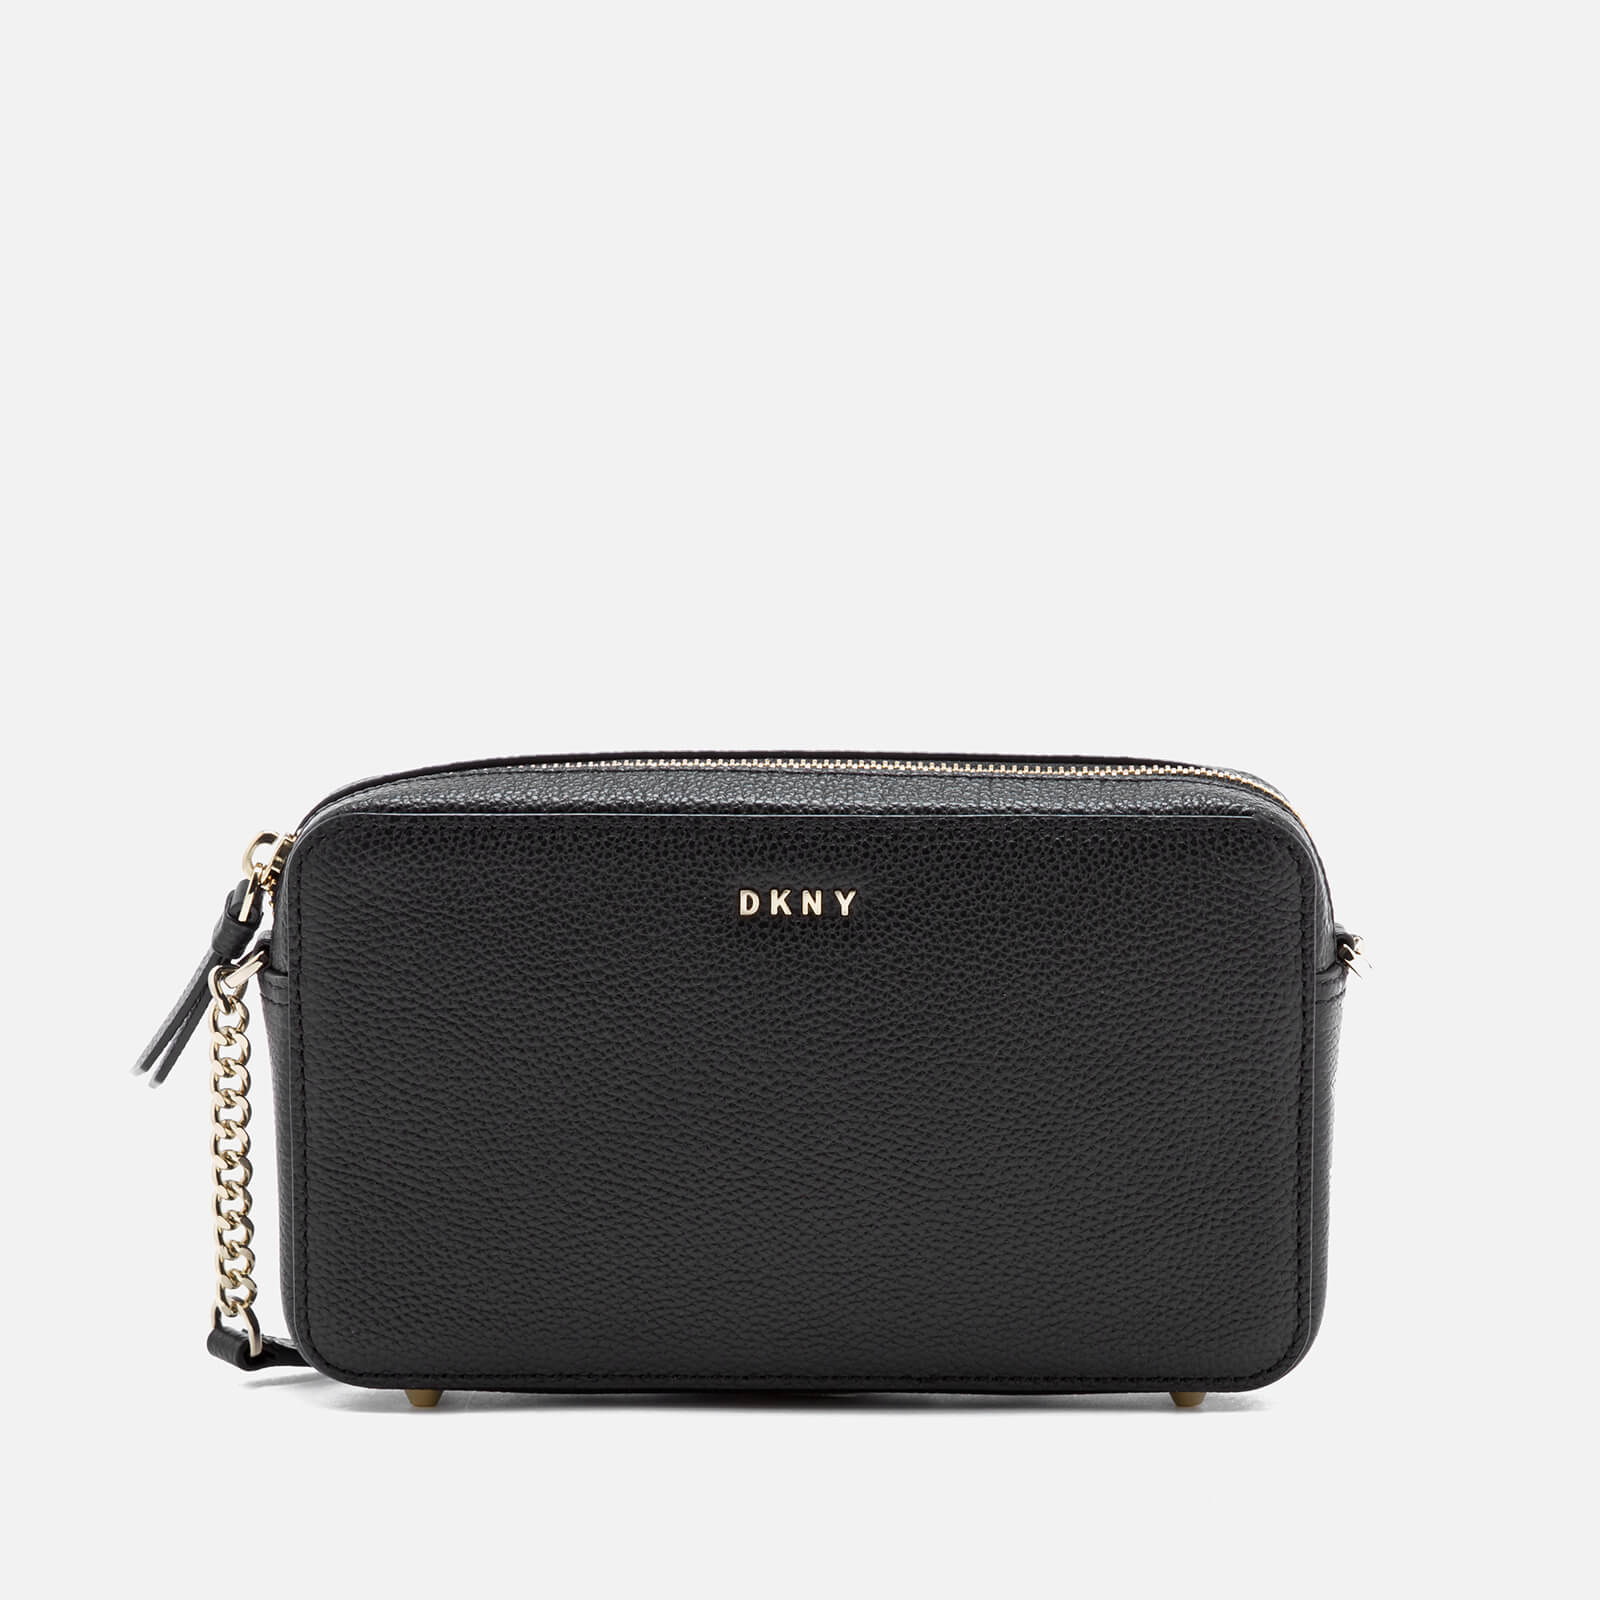 4f330db80145 ... DKNY Women s Chelsea Pebbled Small Leather Top Zip Cross Body Bag -  Black